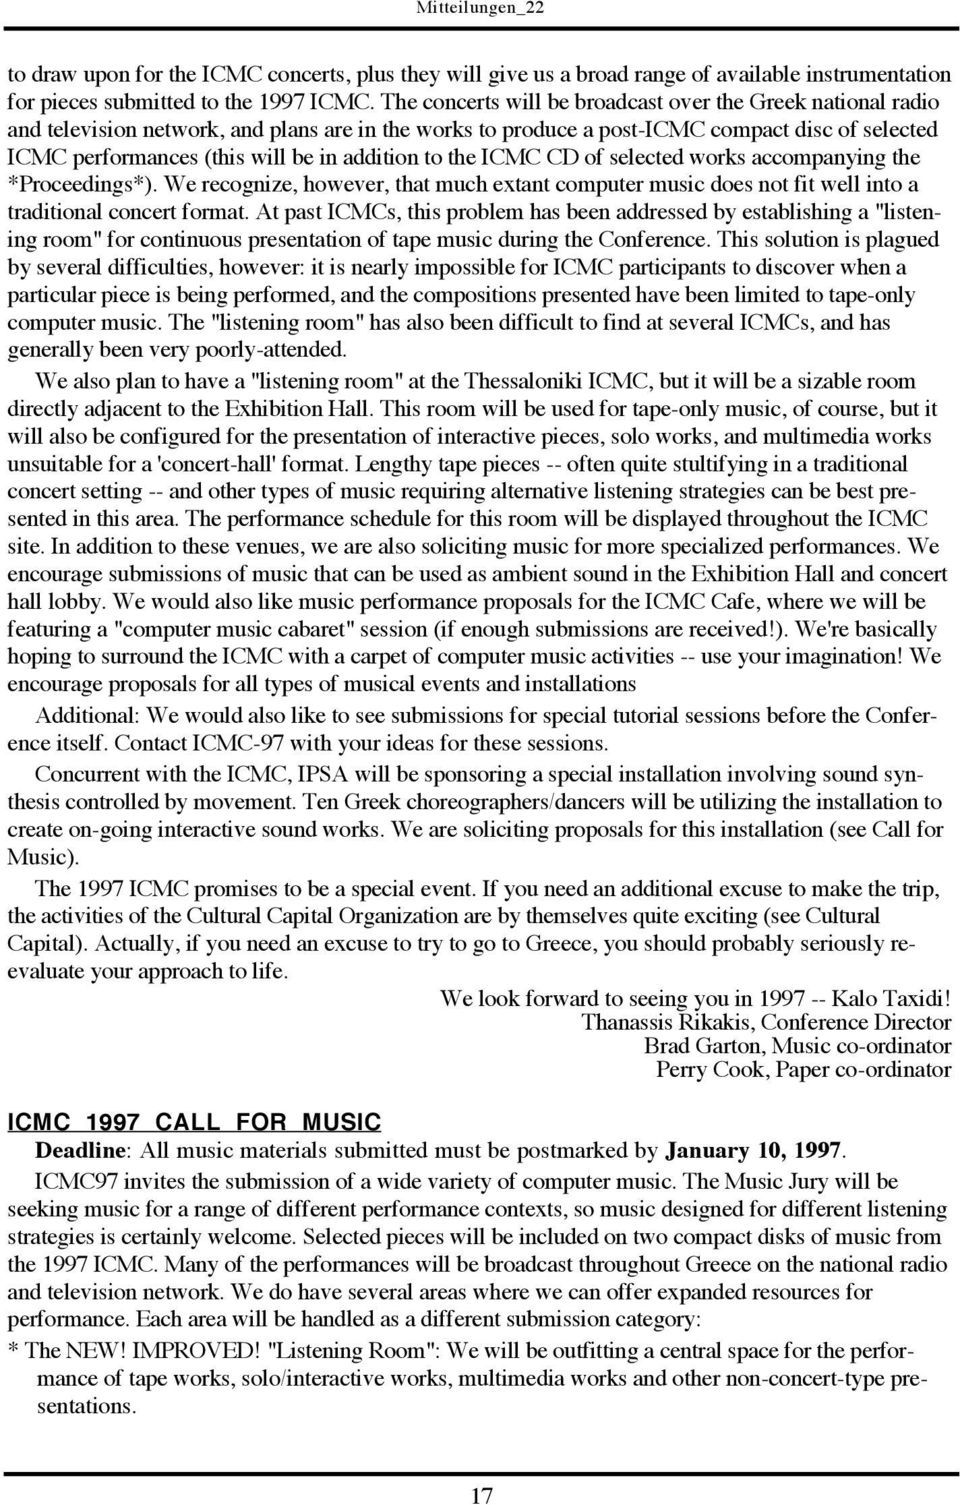 addition to the ICMC CD of selected works accompanying the *Proceedings*). We recognize, however, that much extant computer music does not fit well into a traditional concert format.